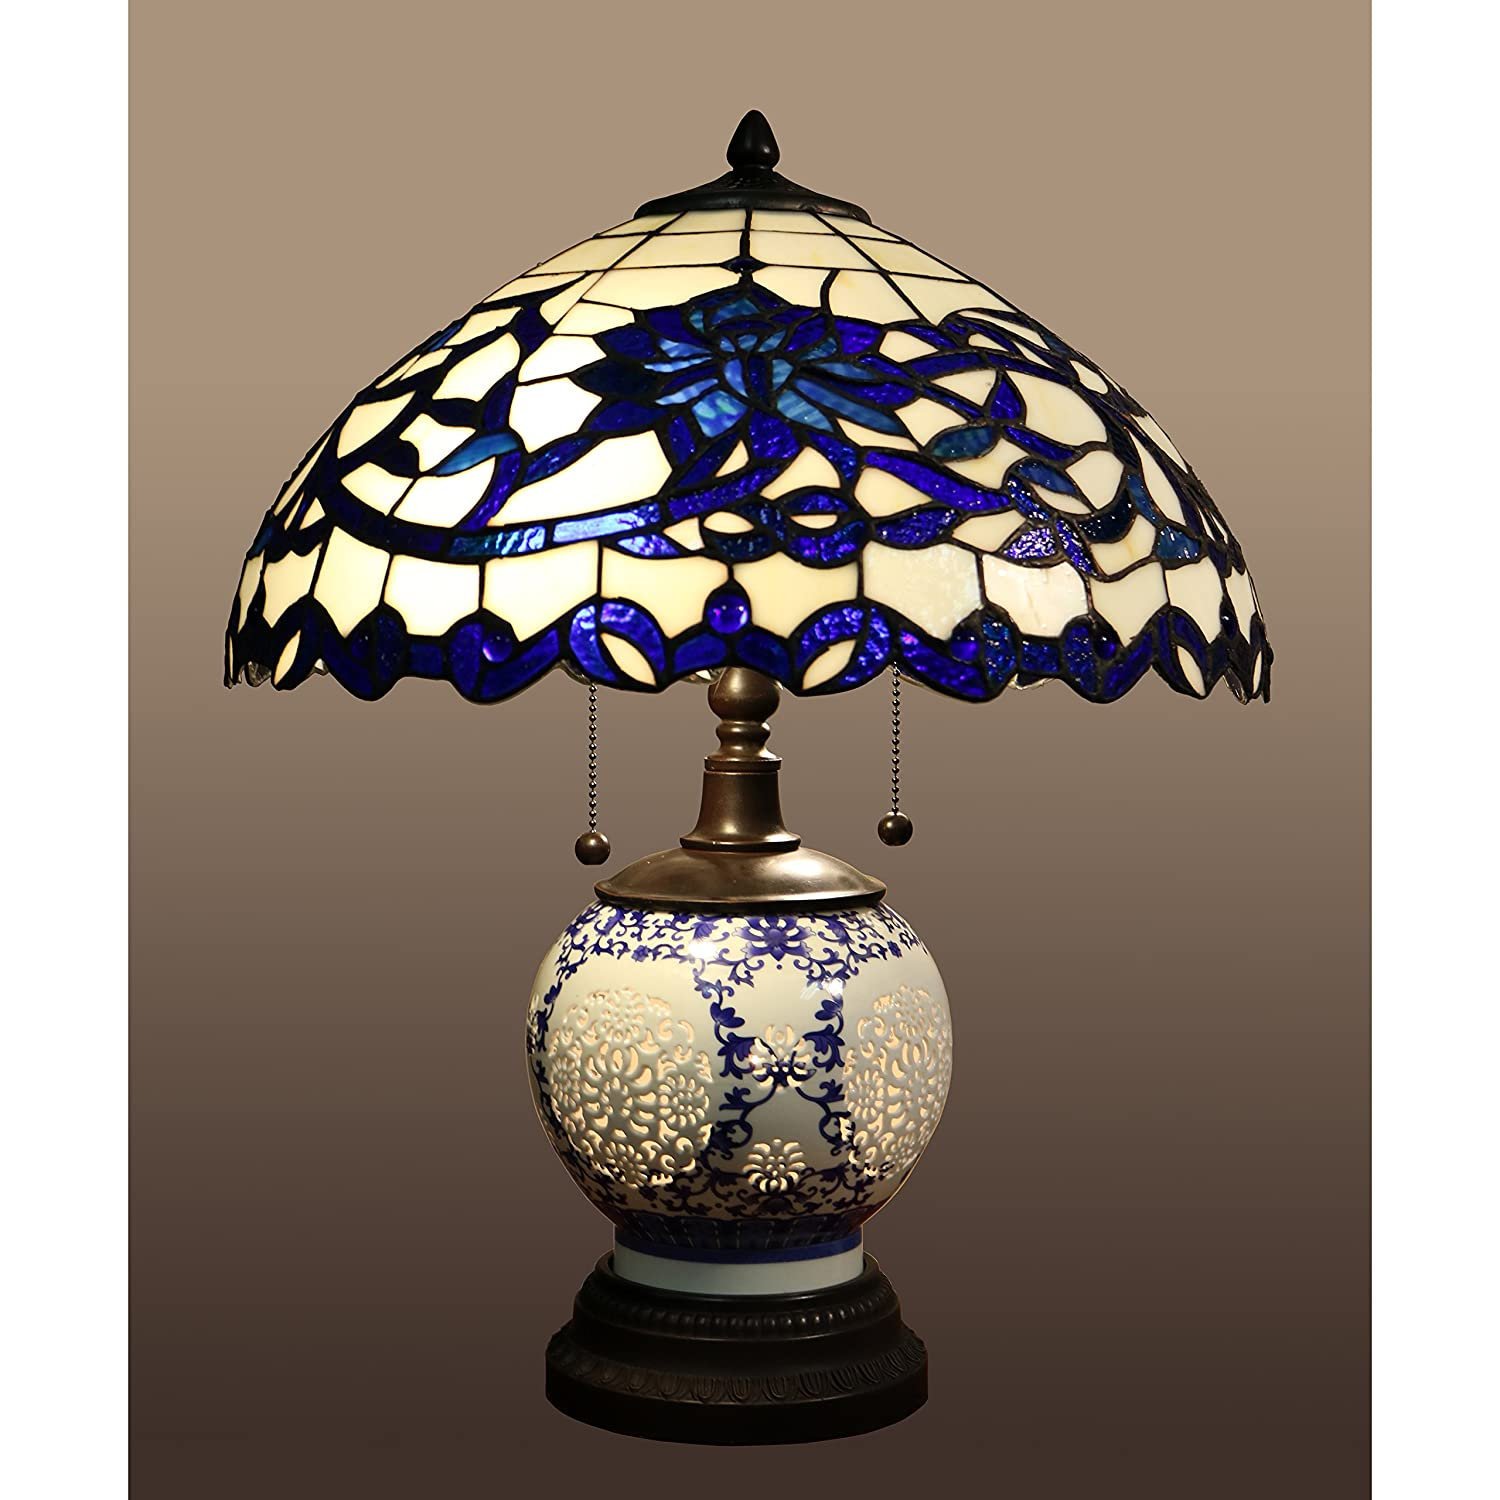 Beautiful And Elegant Indoor Flower Design Akiko 3 Light Blue Glass 21 Inch  Double Lit Tiffany Style Table Lamp   DYL451 743. Stained Glass Table Lamp.